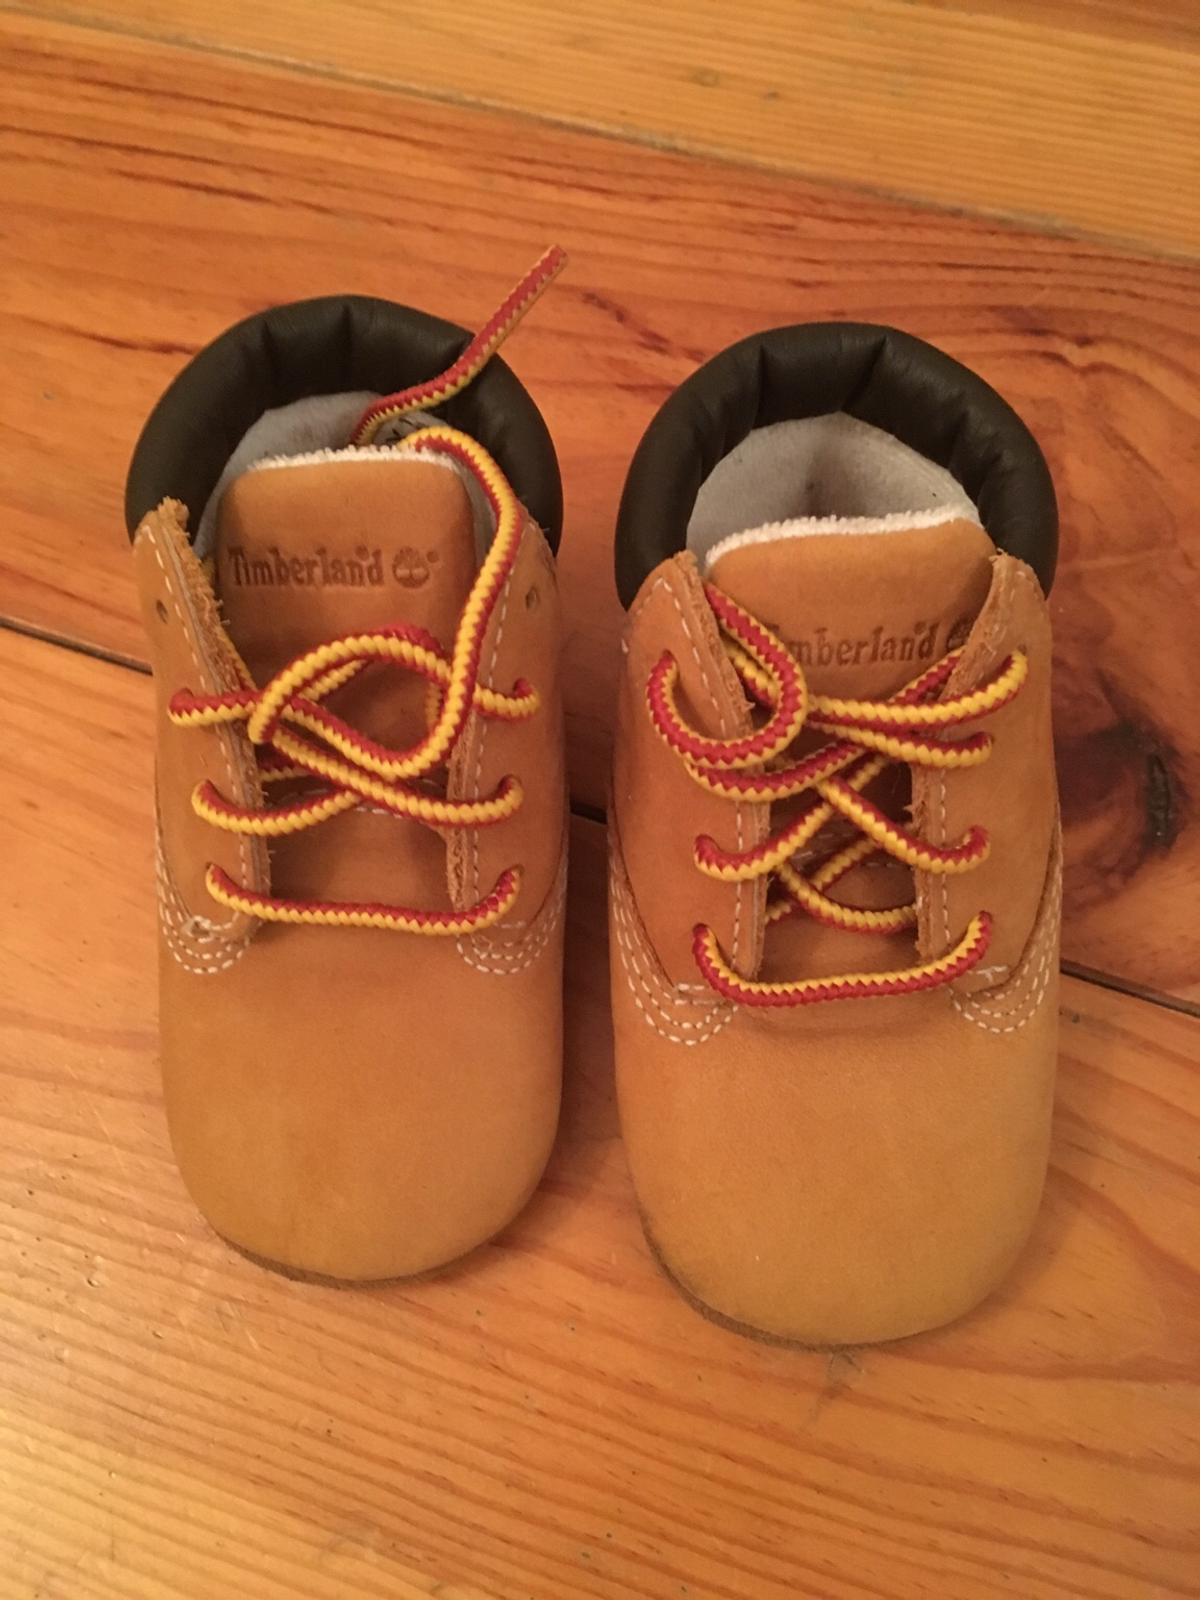 Timberland baby crib boots size 2.5